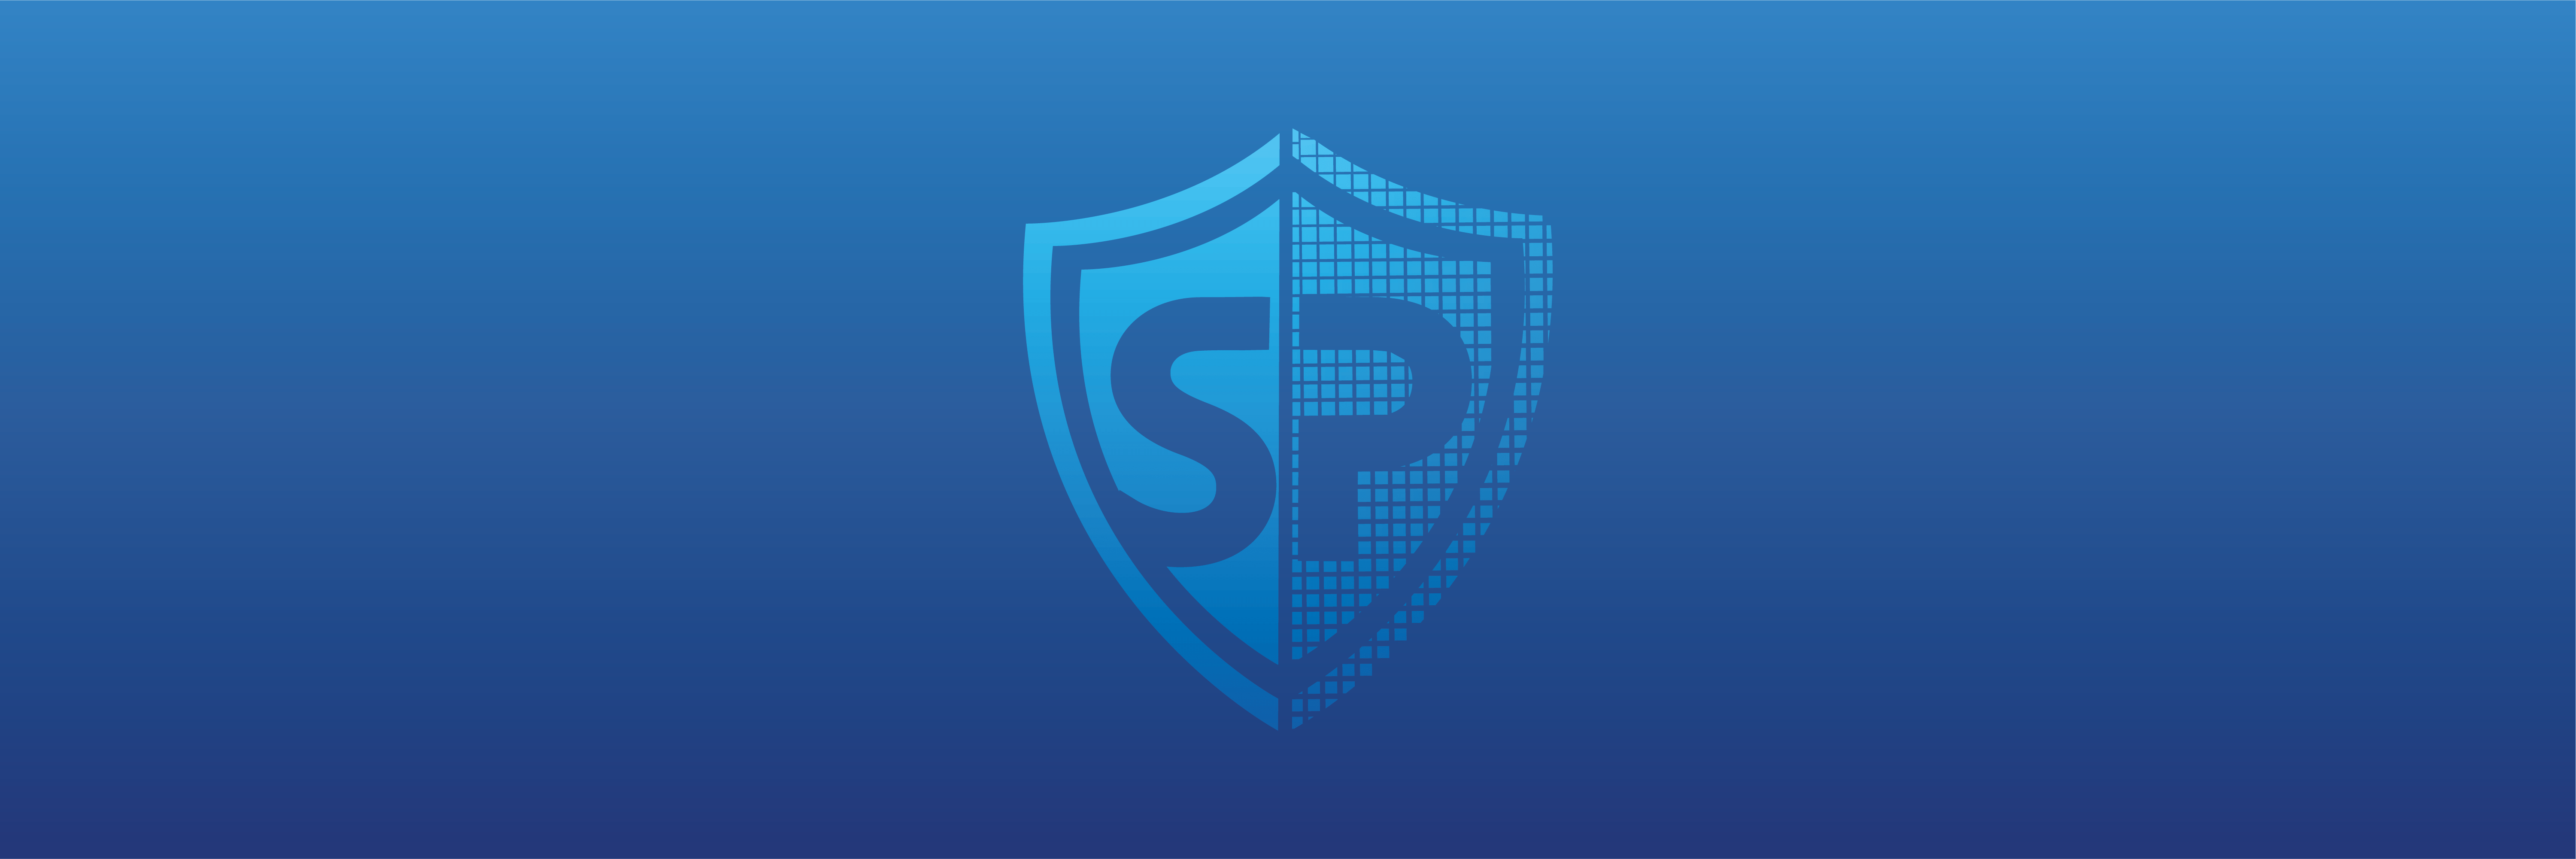 https://solidproof.io/img/placeholder/blog-placeholder.png